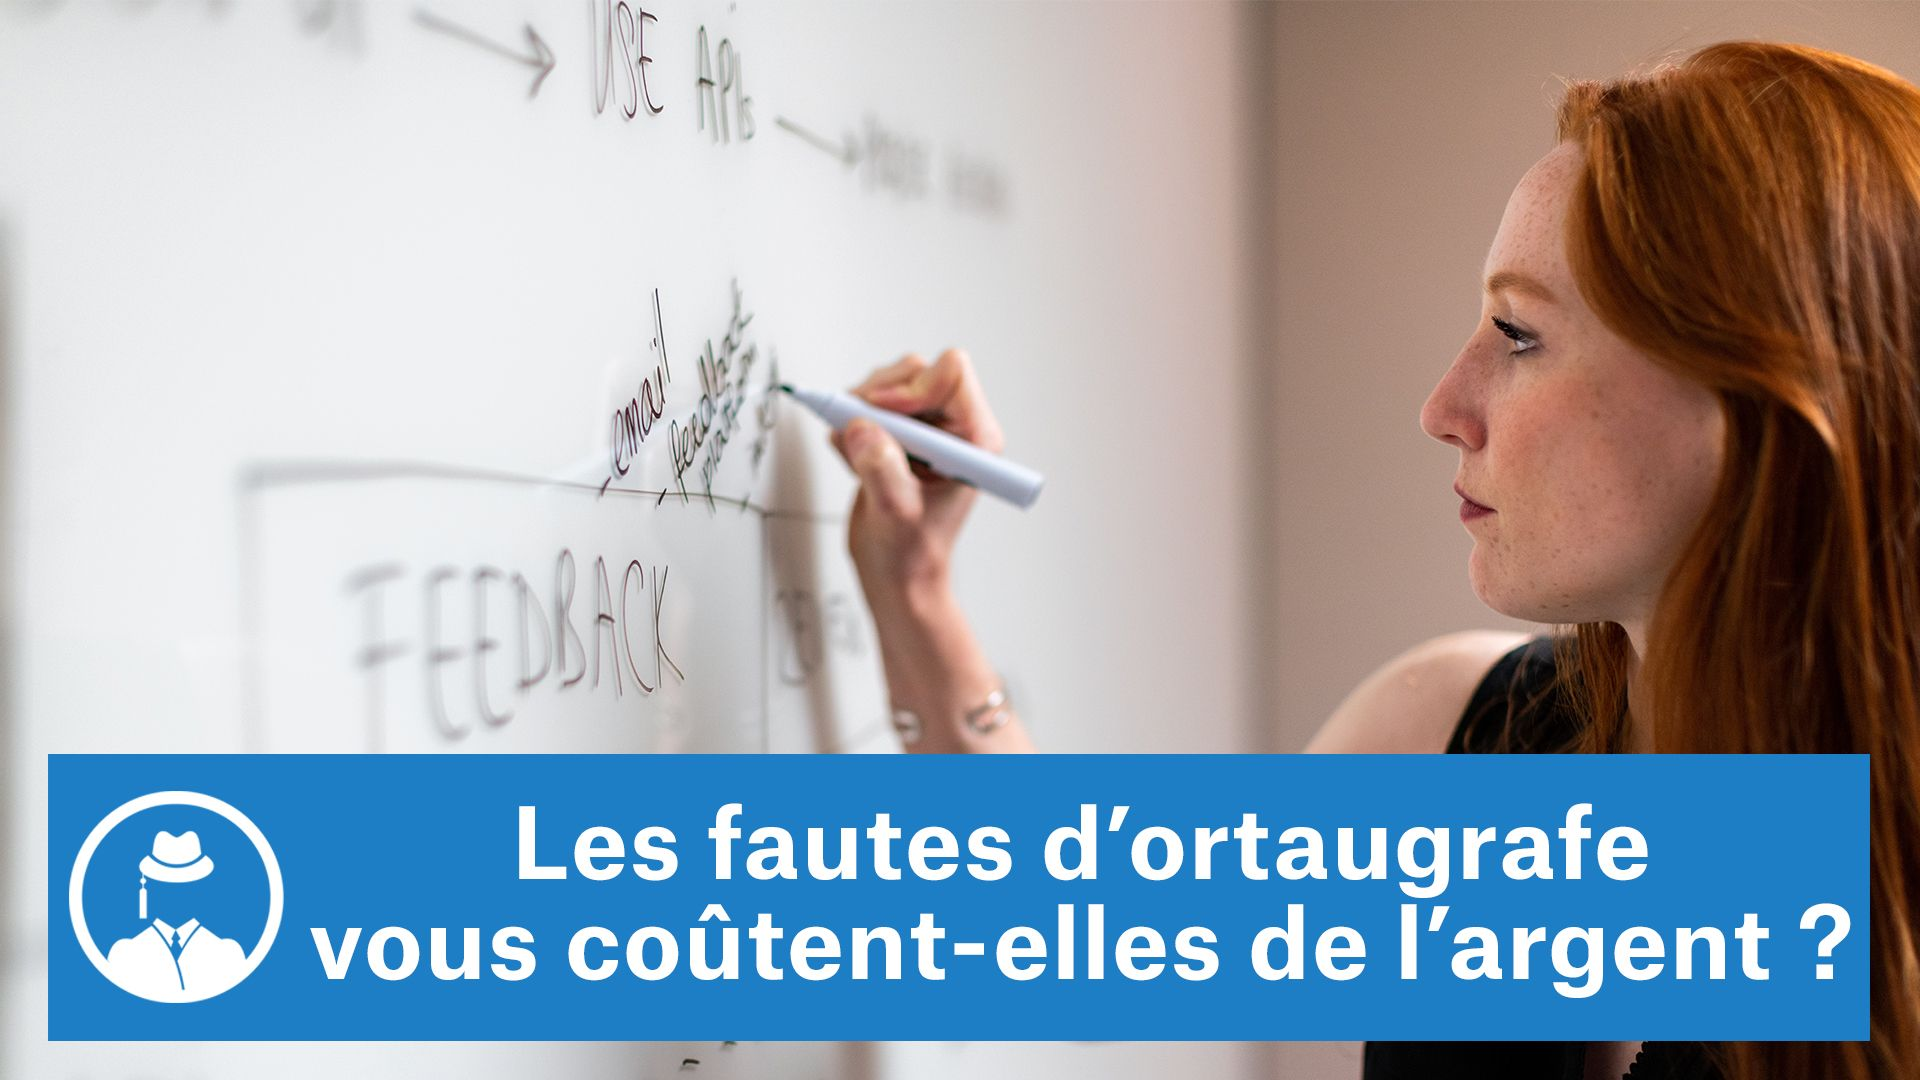 Les fautes d'orthographe vous coûtent-elles de l'argent ? #GrowthHacking #WebMarketing #FormationGrowthHacking #CentreDeFormationFrance #TunnelAARRR #AARRR #SocialMedia #CommunityManagement #SEO #MarketingDigital #SiteWeb #Copywriting